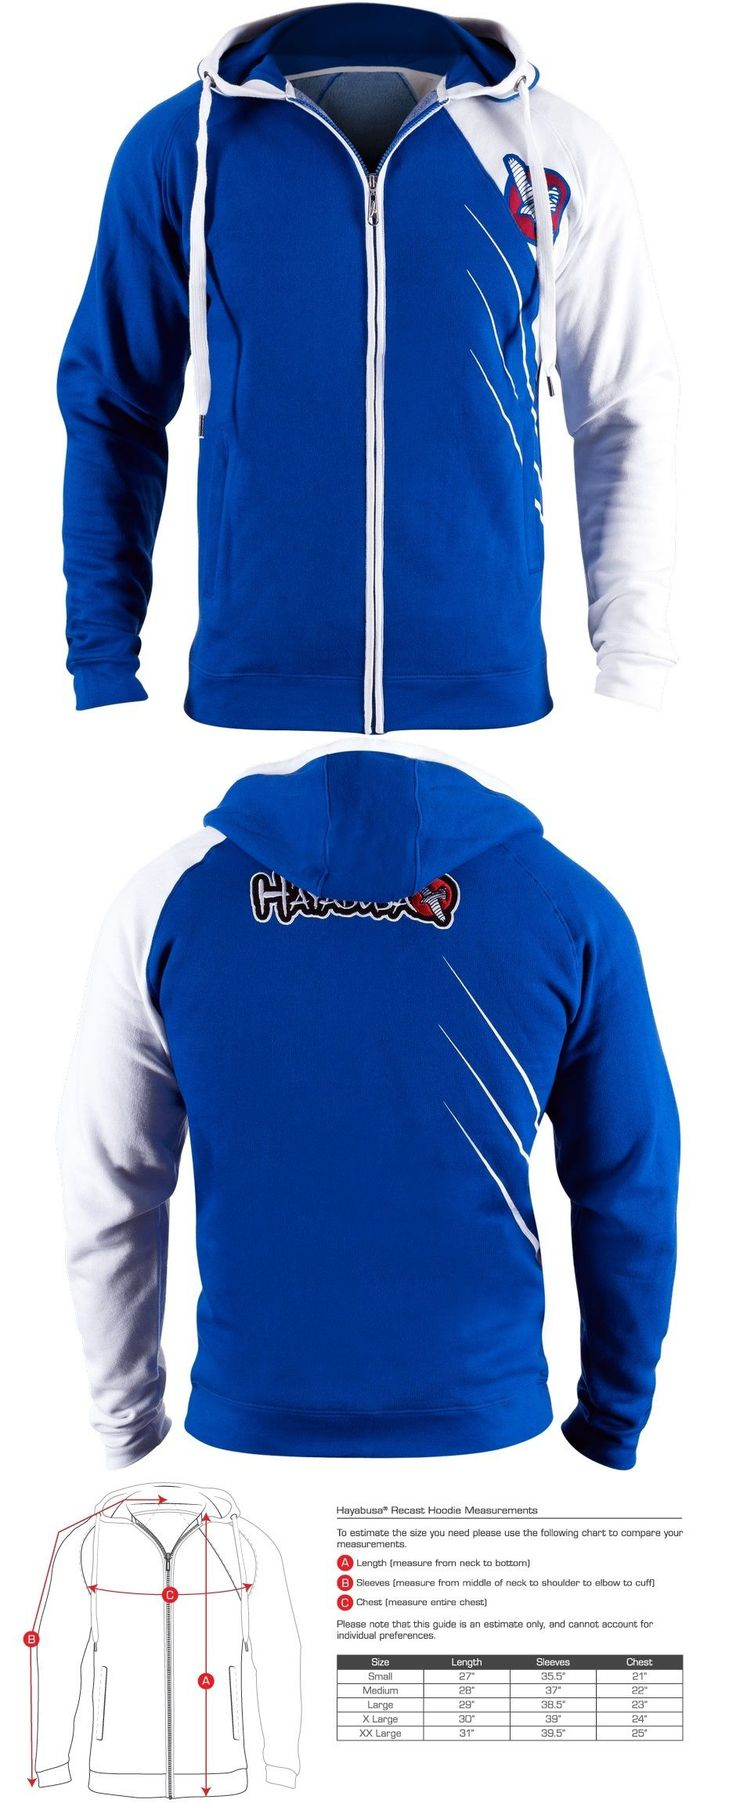 Hoodies and Sweatshirts 179770: New Hayabusa Recast Mens Hoodie Sweat Shirt Mma - Blue / White - X-Large Xl -> BUY IT NOW ONLY: $79.99 on eBay!